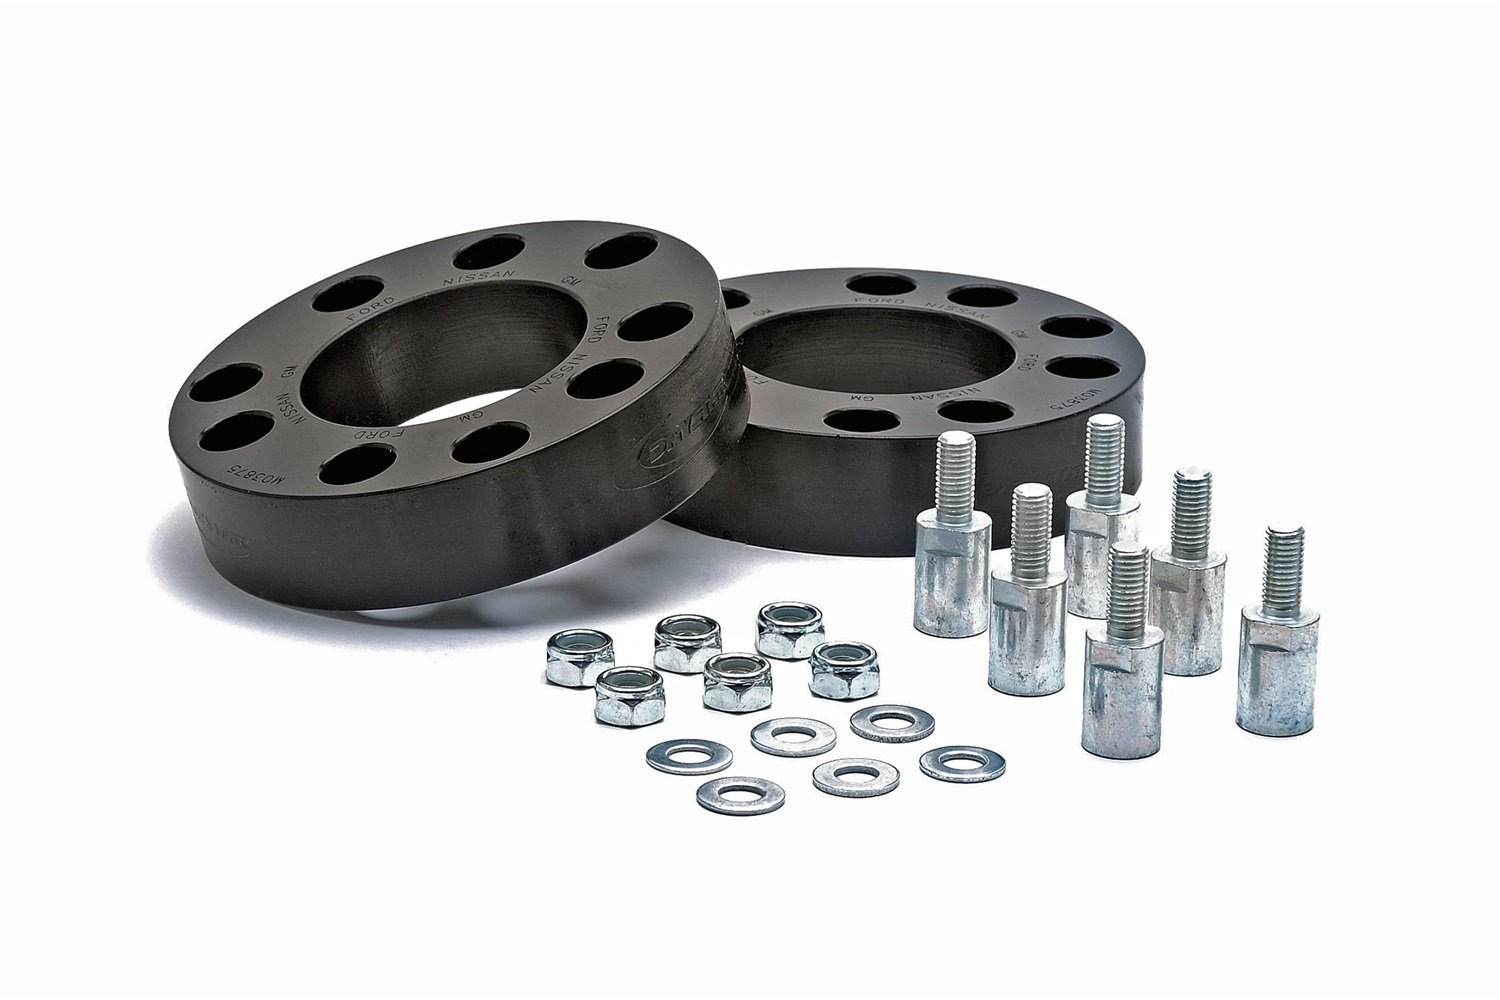 Daystar, Chevy/GMC Tahoe 2'' Leveling Kit, fits Tahoe, Yukon and Suburban 2014 to 2017 2/4WD, all transmissions, all cabs KG09134BK, Made in America by Daystar (Image #1)